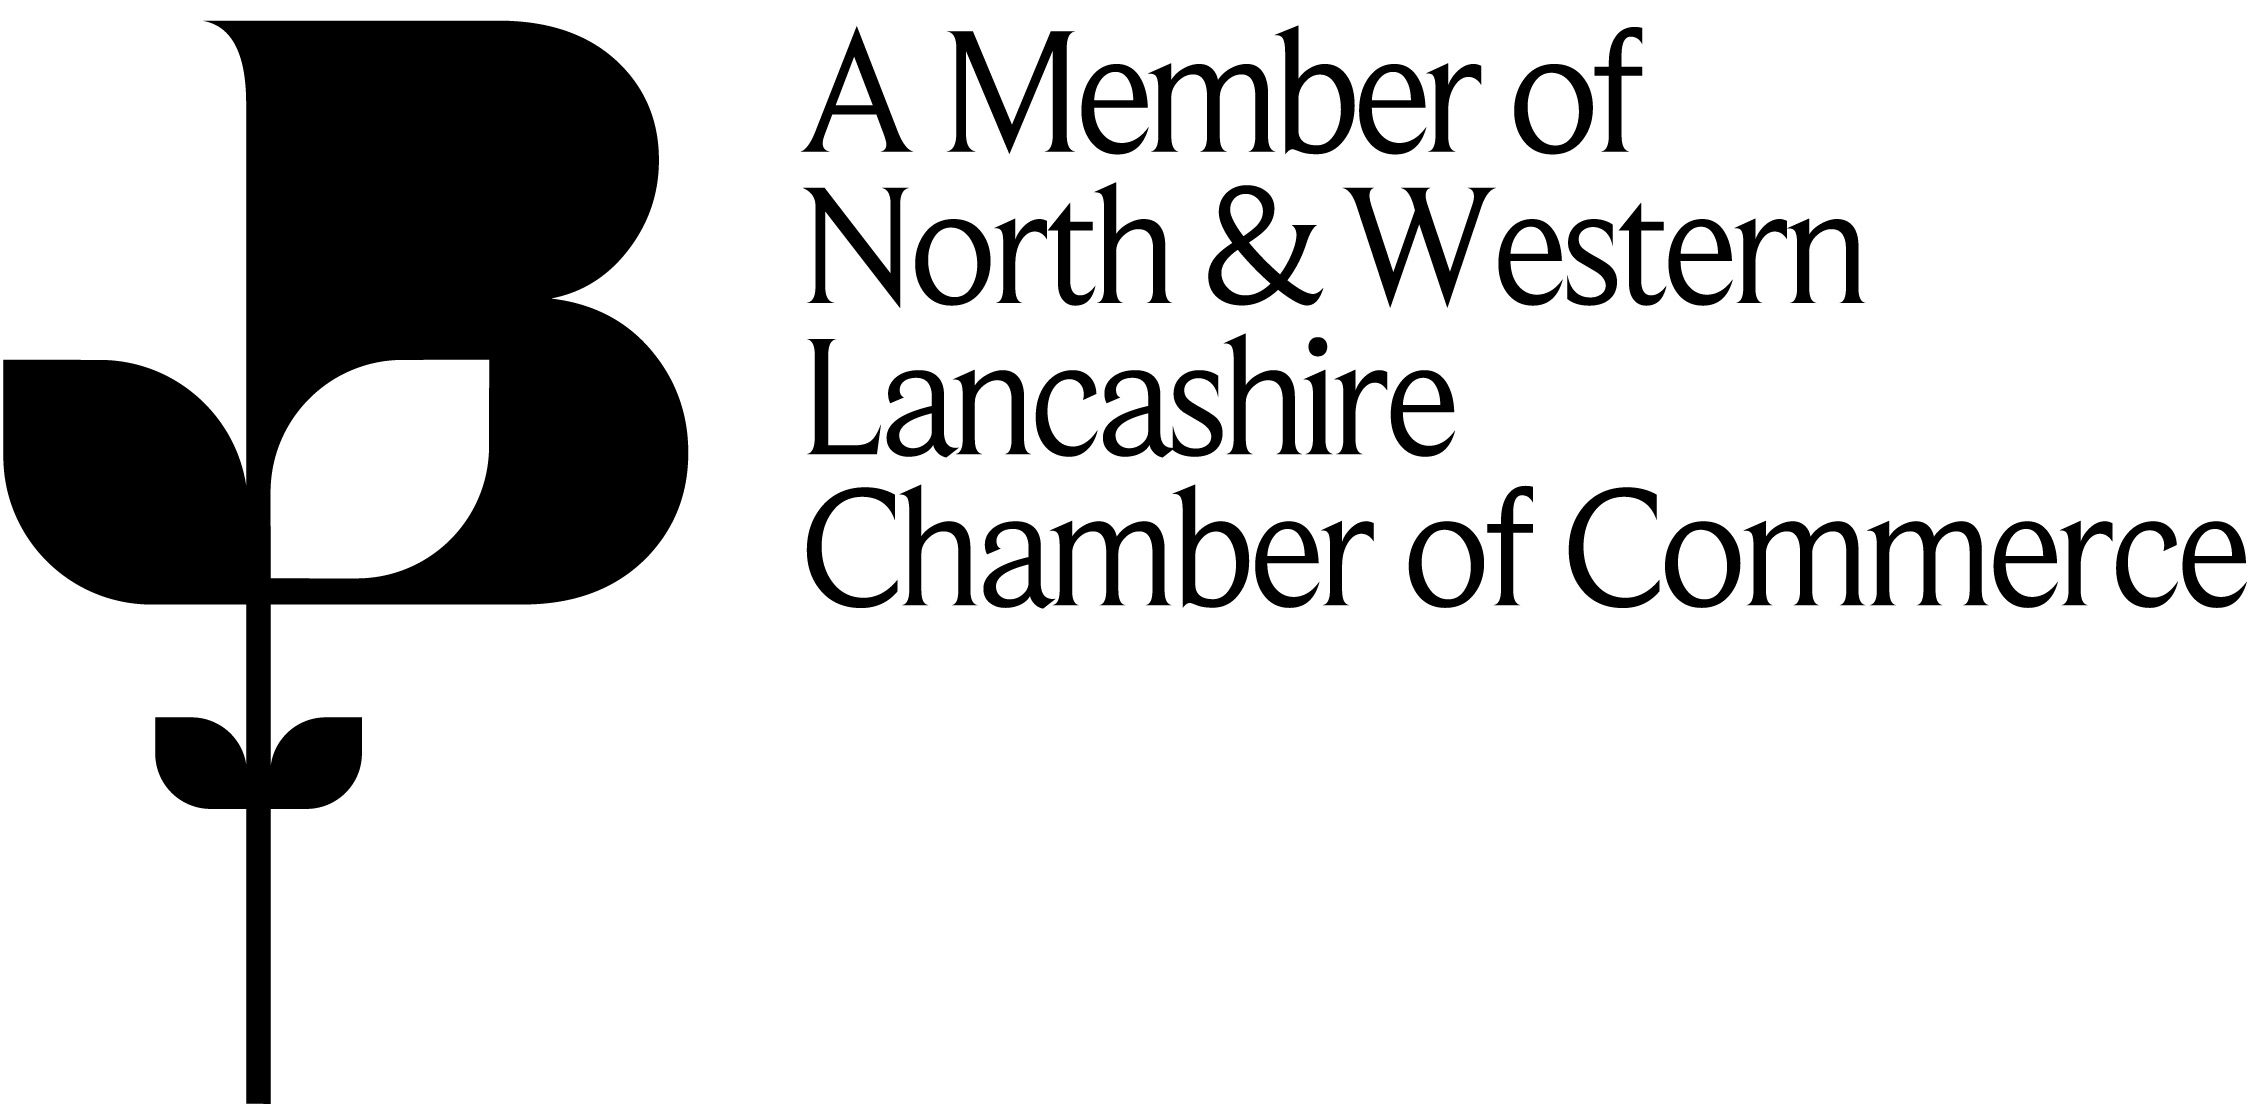 A member logo of the Chamber of Commerce North & Western Lancashire